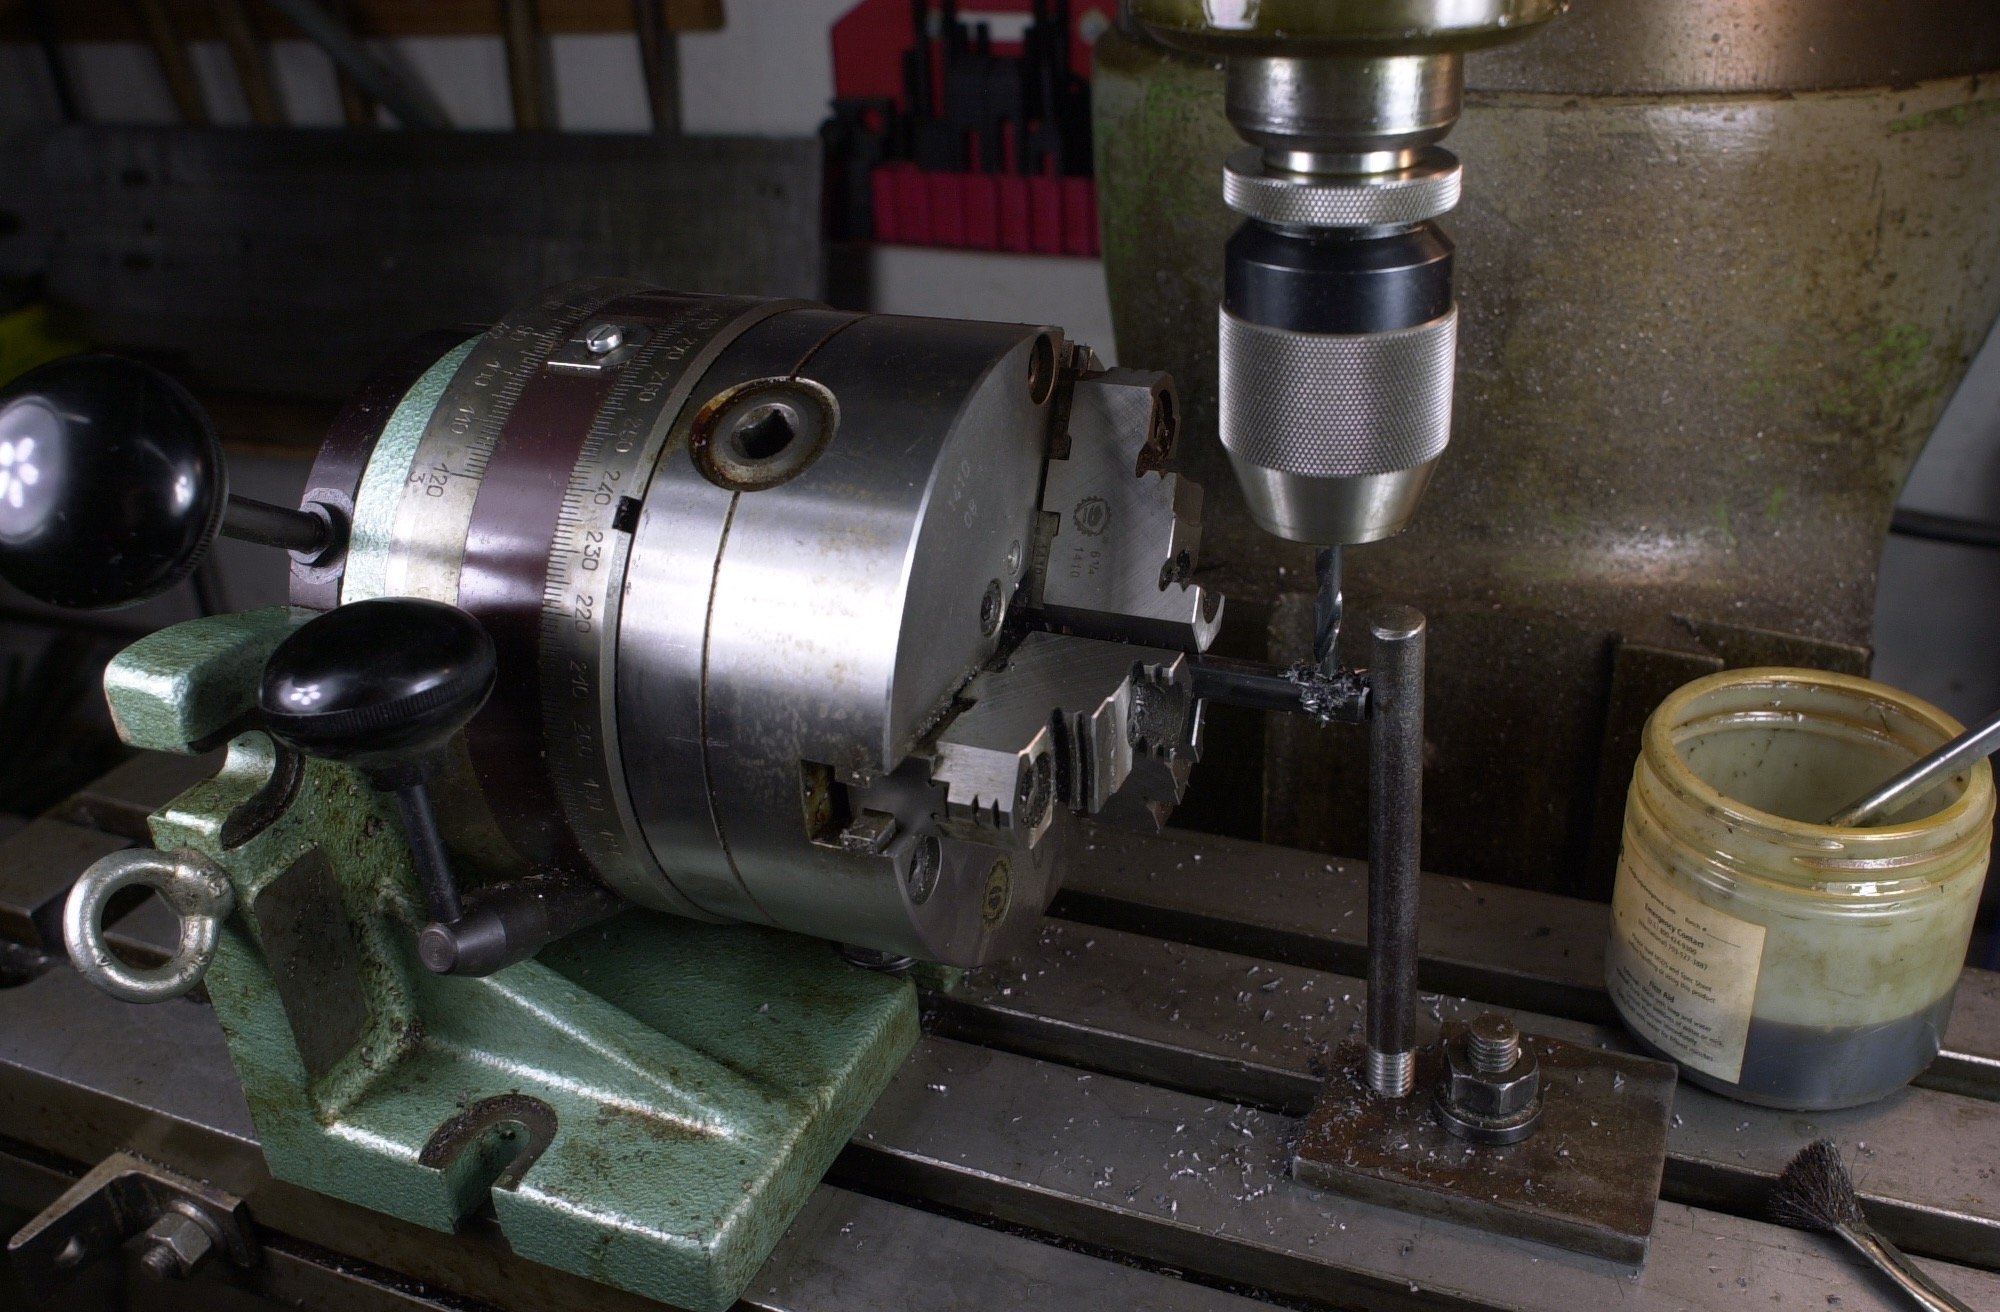 Modifications are underway to the LAN71 bottom bracket tapper to accommodate 68/73, 100 and 120mm wide bottom bracket shells.  The photo is the set screw hole drilling of the arbor rods for 68/73, 100 and 120mm length shells.  The rods can now be interchanged with the male arbor for different width bottom bracket shells.